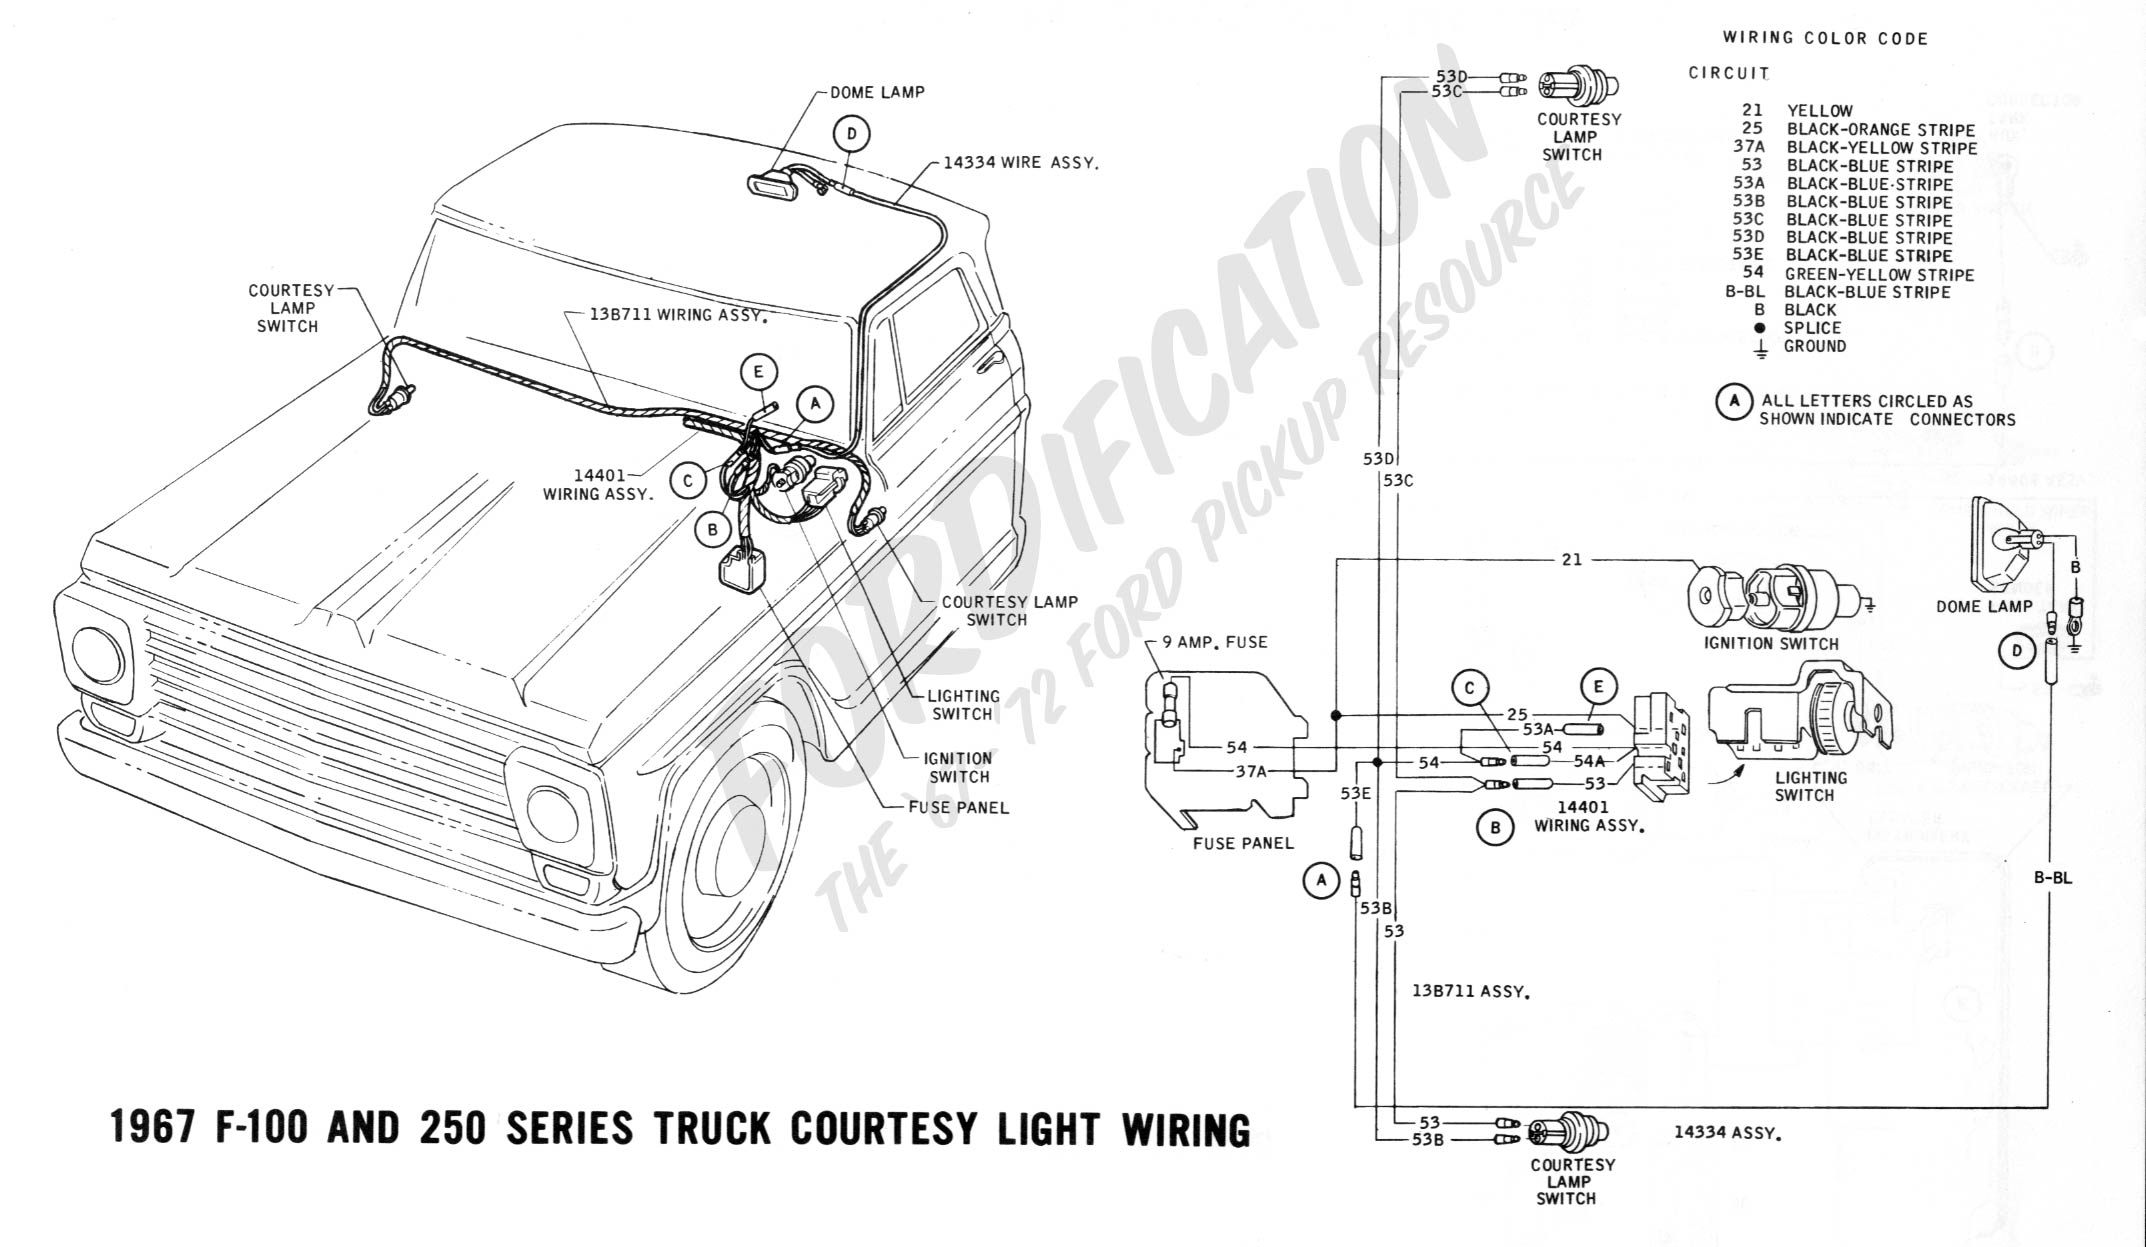 wiring 1967courtesylight wiring in ignition switch in 1966 f100 ford truck enthusiasts forums Ford E 350 Wiring Diagrams at couponss.co